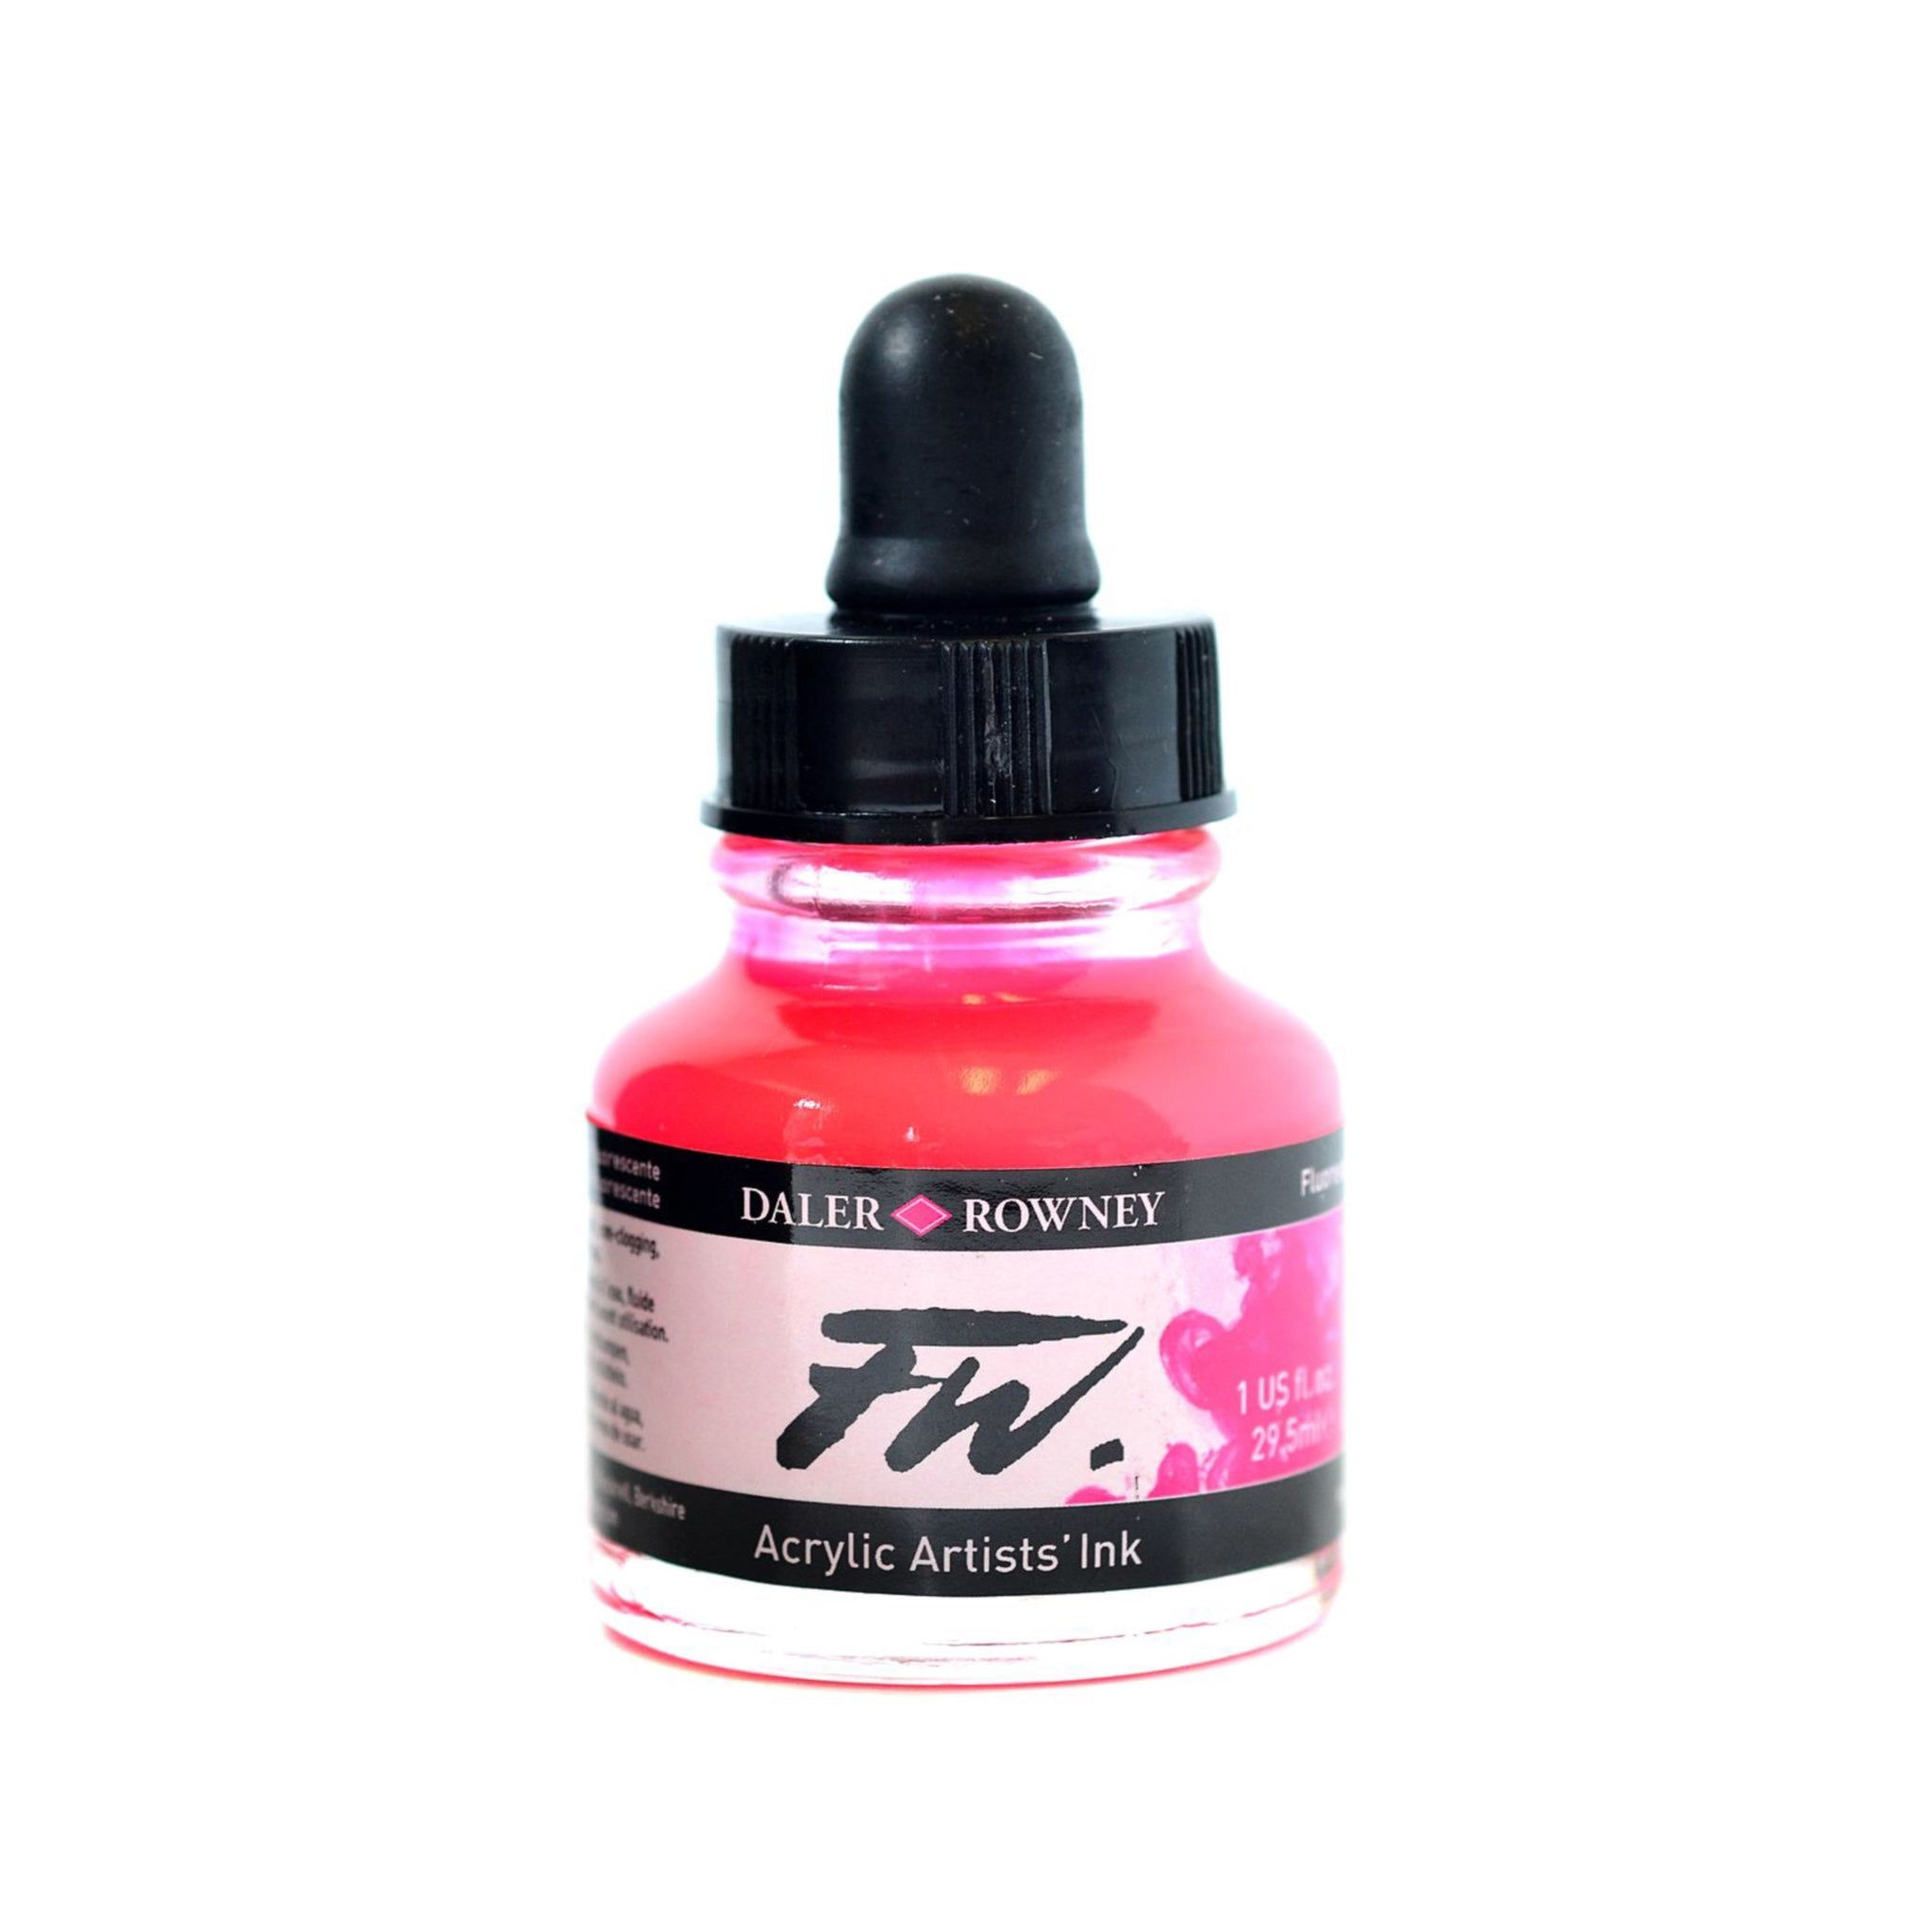 Daler Rowney FW Acrylic Ink - Fluorescent Pink by Daler Rowney - K. A. Artist Shop